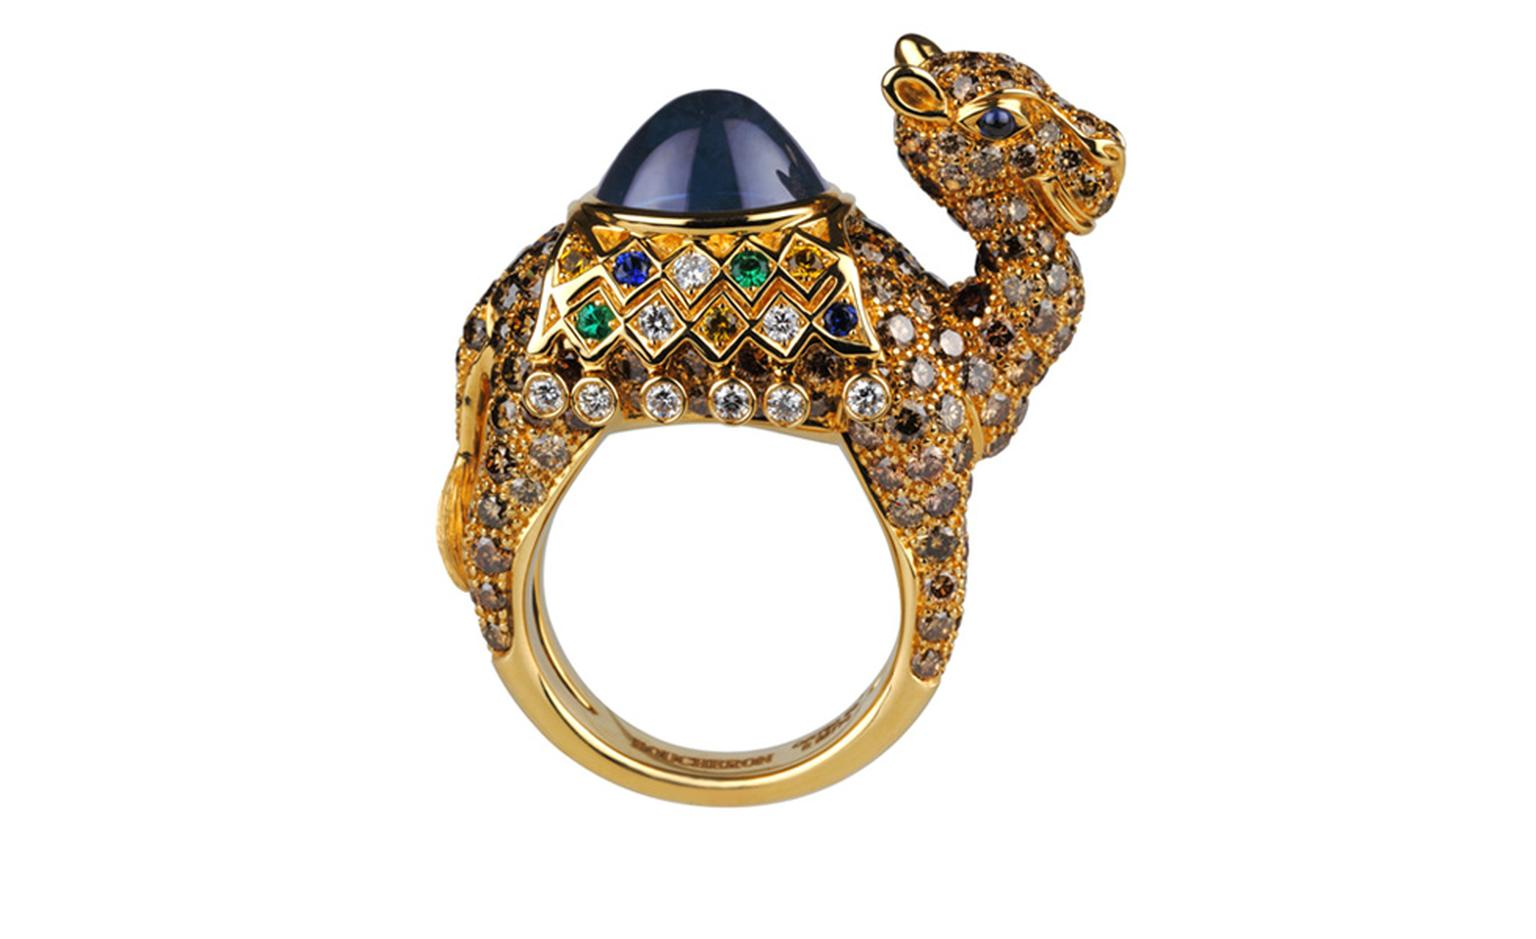 BOUCHERON. Jamal ring. Madagascar sapphire, yellow and blue sapphires and emeralds. Price from £35,200.